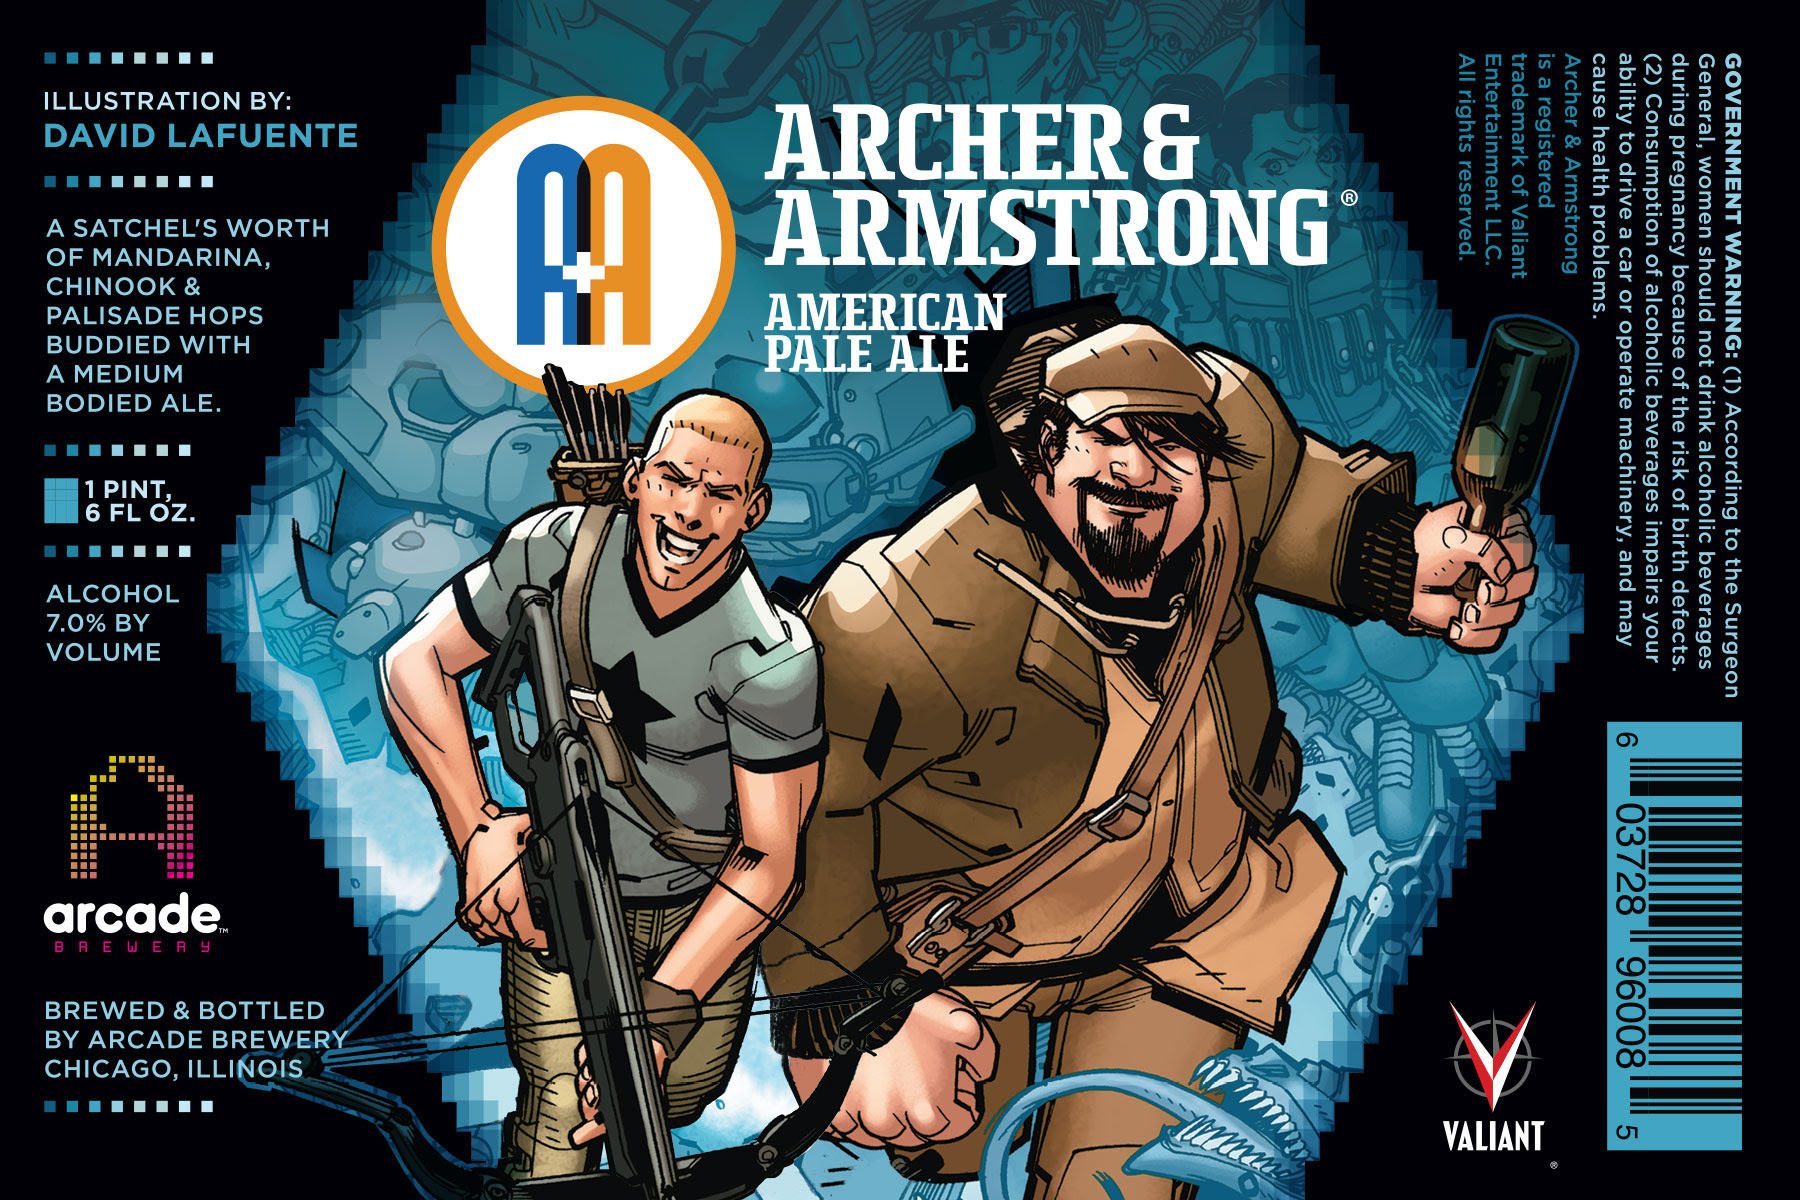 Archer & Armstrong American Pale Ale - Label Artwork by David Lafuente